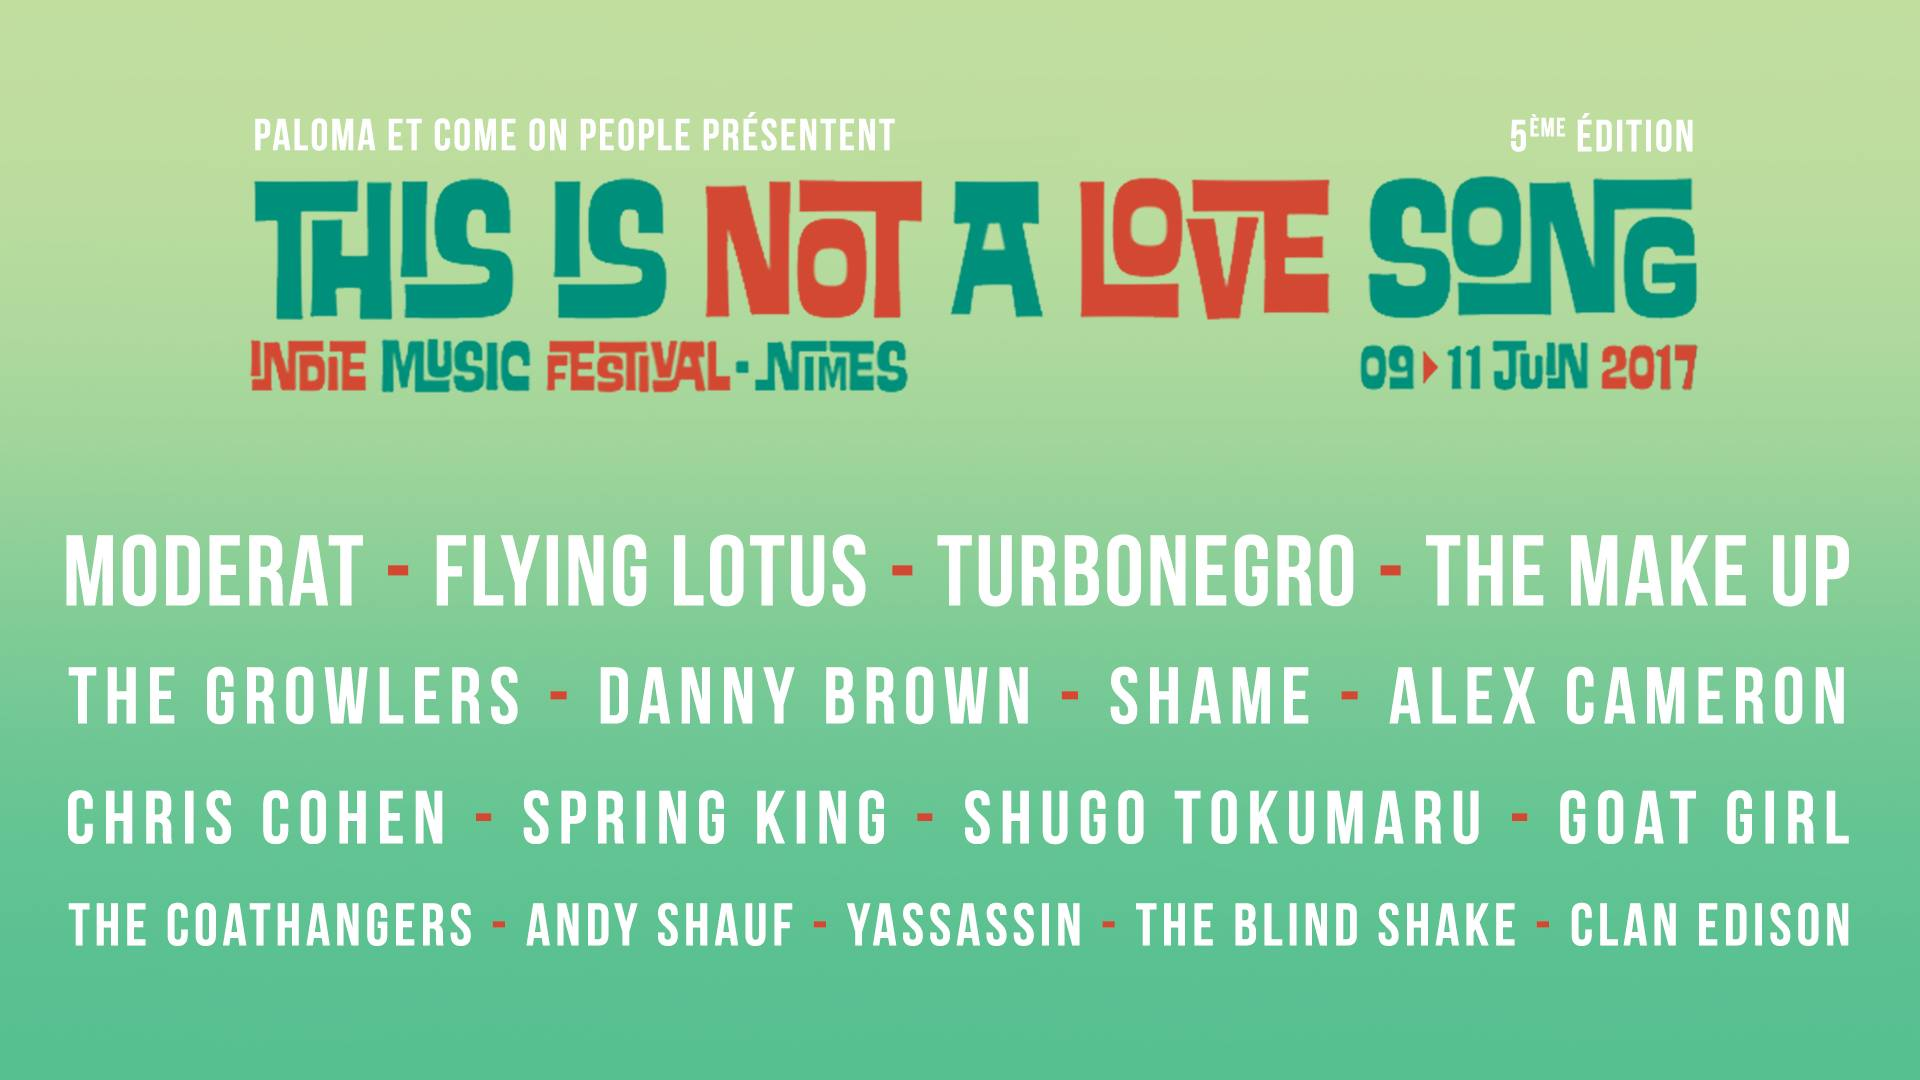 This is Not A Love Song (9, 10 & 11 juin 2017)